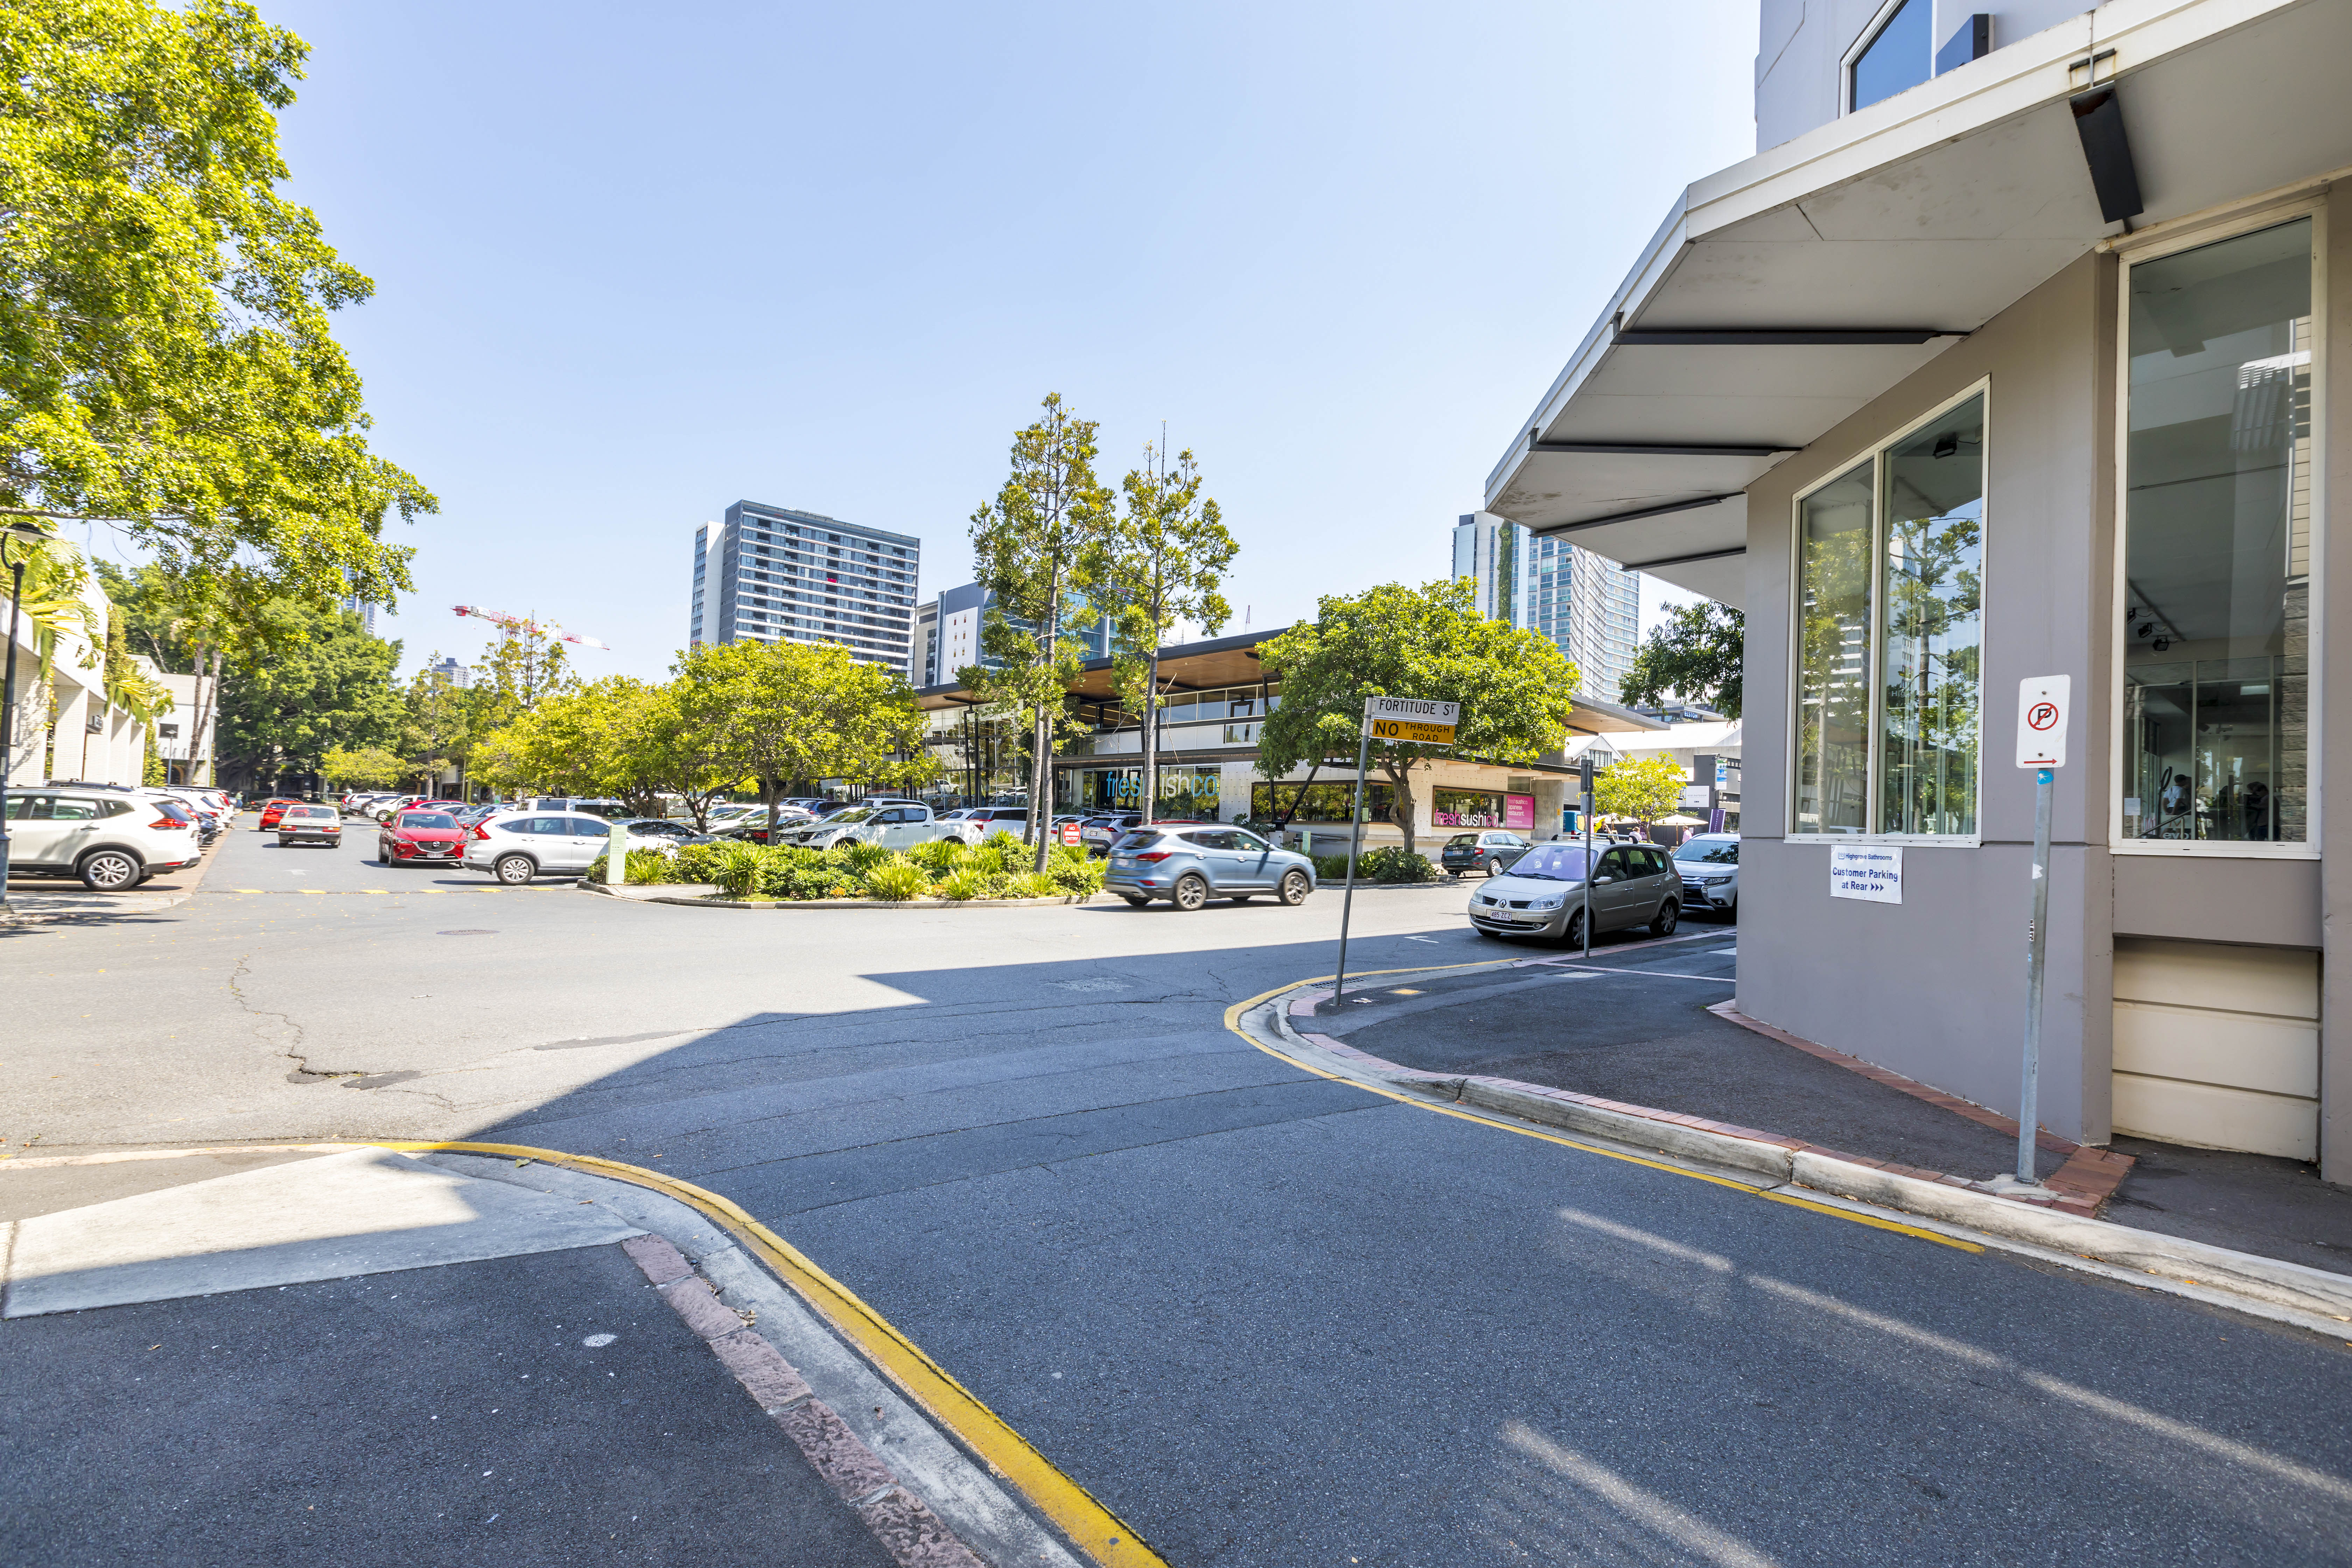 Fortitude Valley commercial retail tenancies in James Street Precinct - Brisbane property real estate agency - Retail showroom